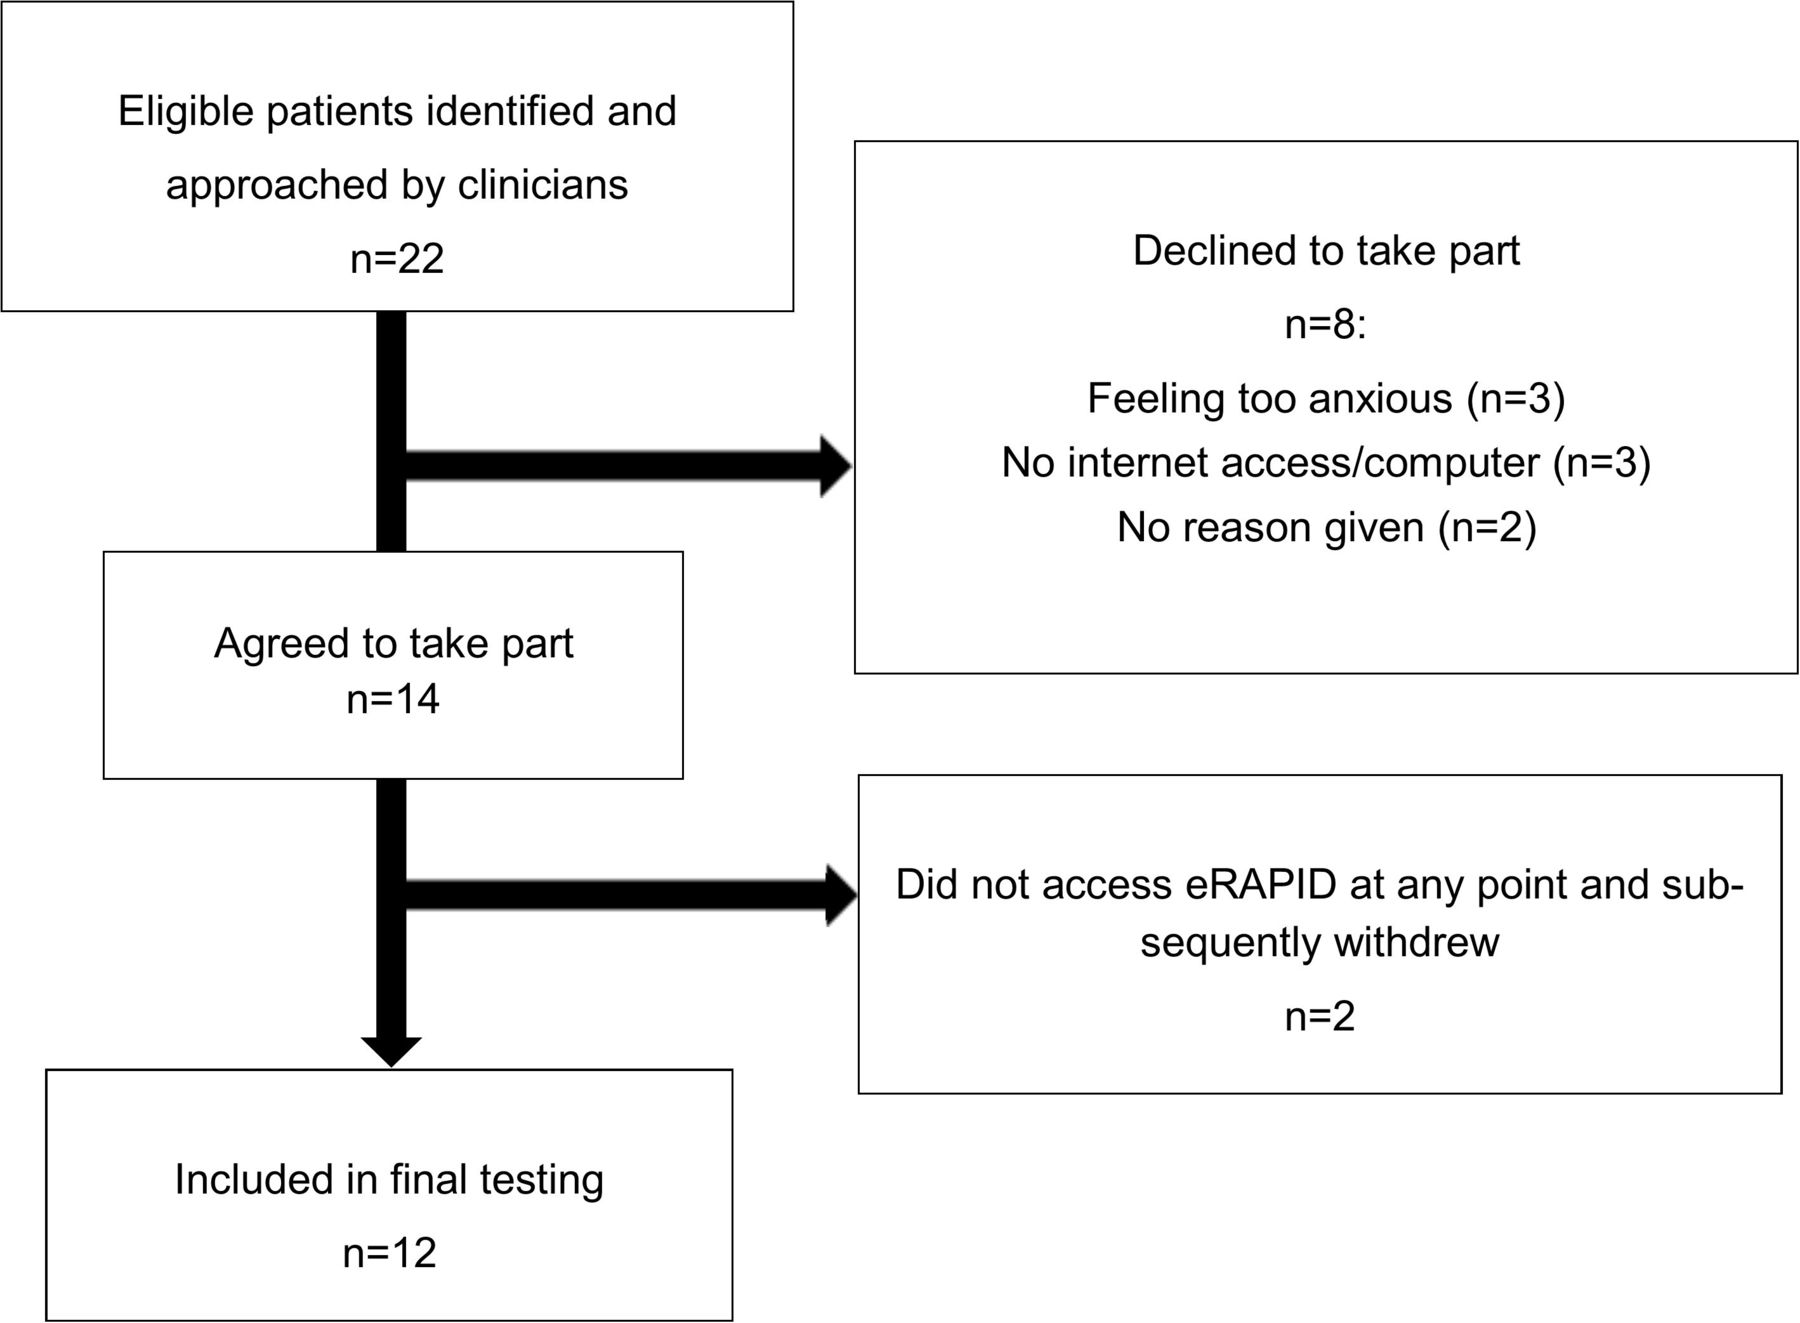 Online tool for monitoring adverse events in patients with cancer